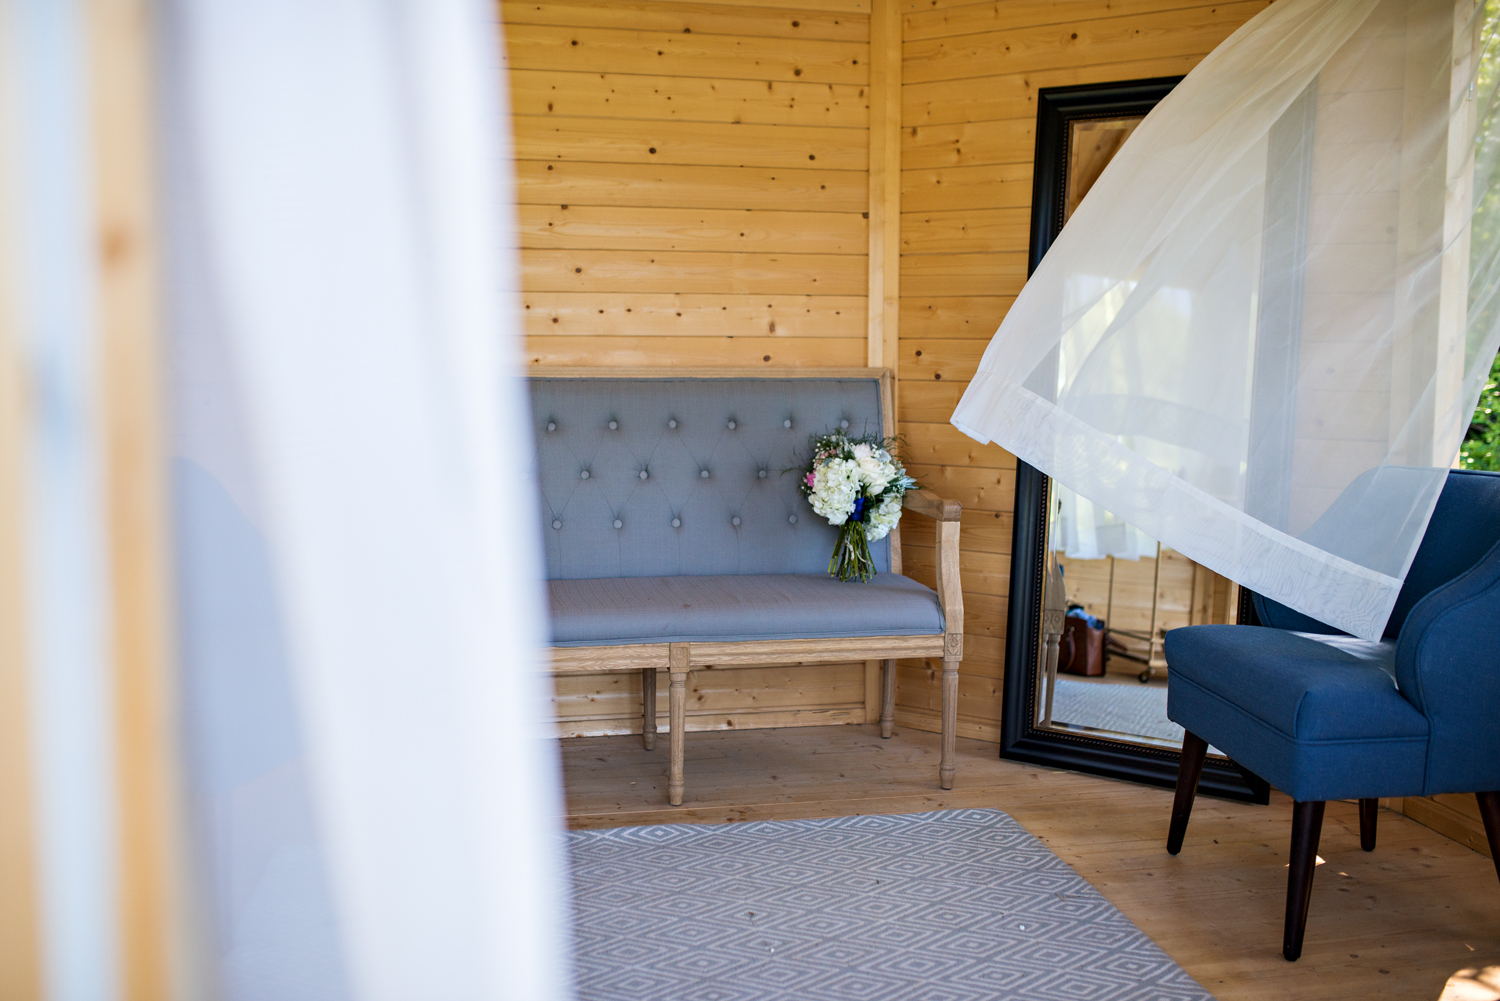 michigan_vineyard_wedding_photographer_davetree_photography_386.jpg